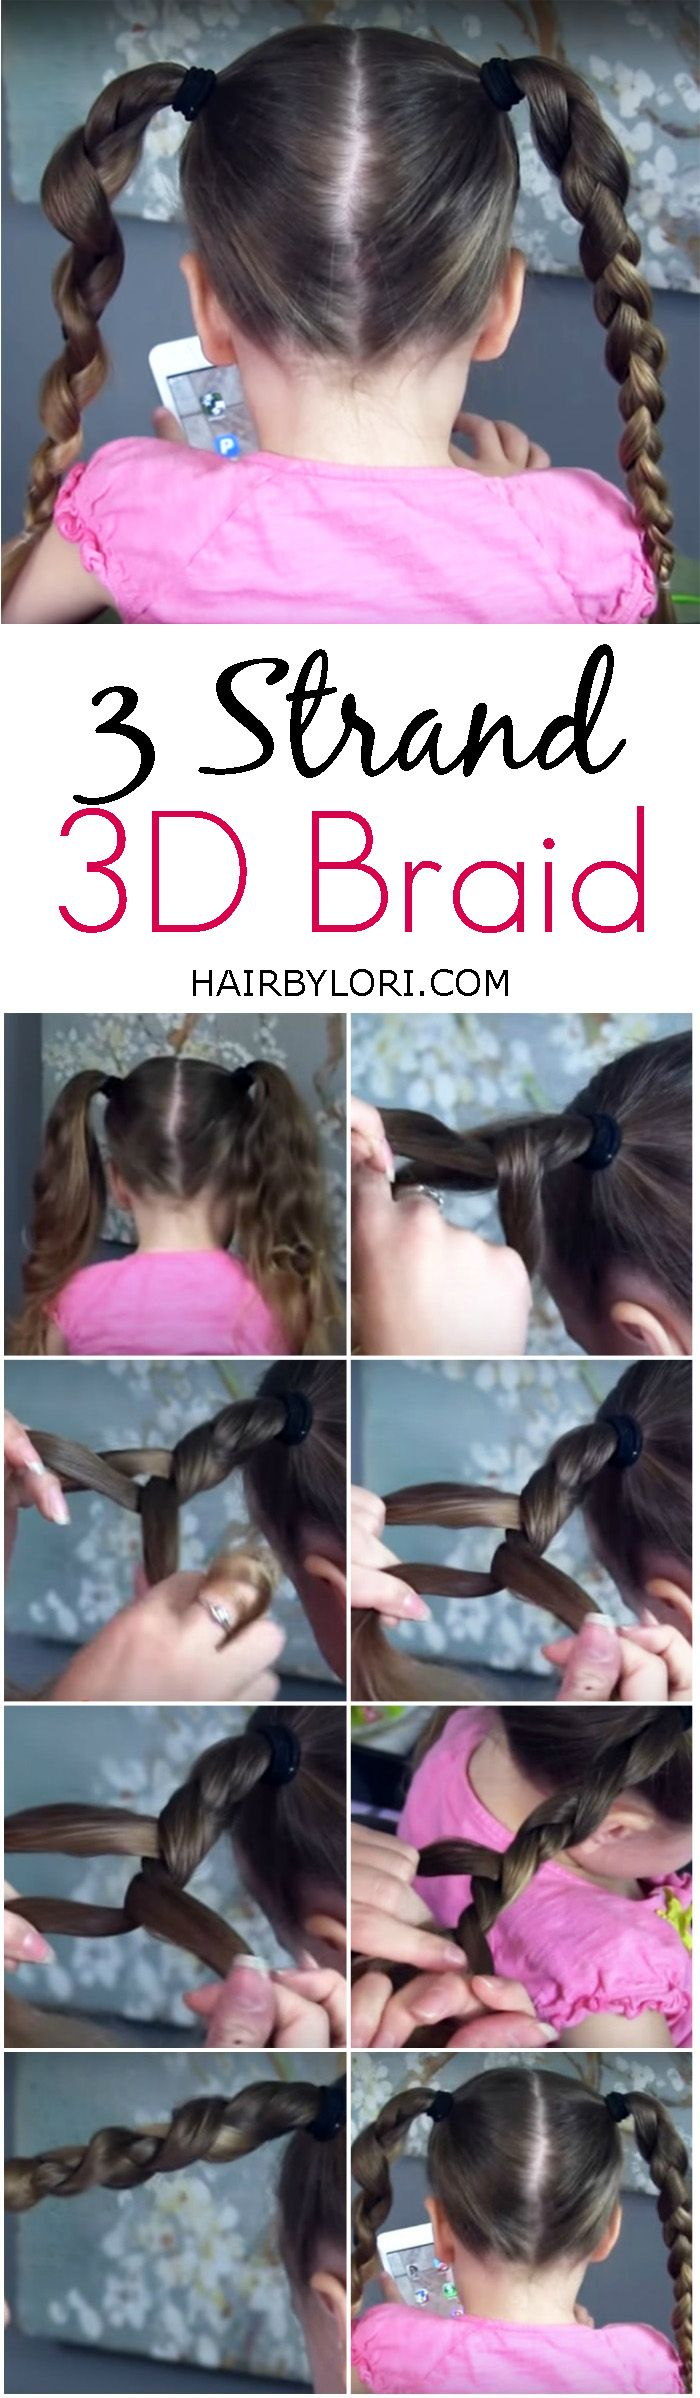 Video Tutorial 3 Strand 3D Braid